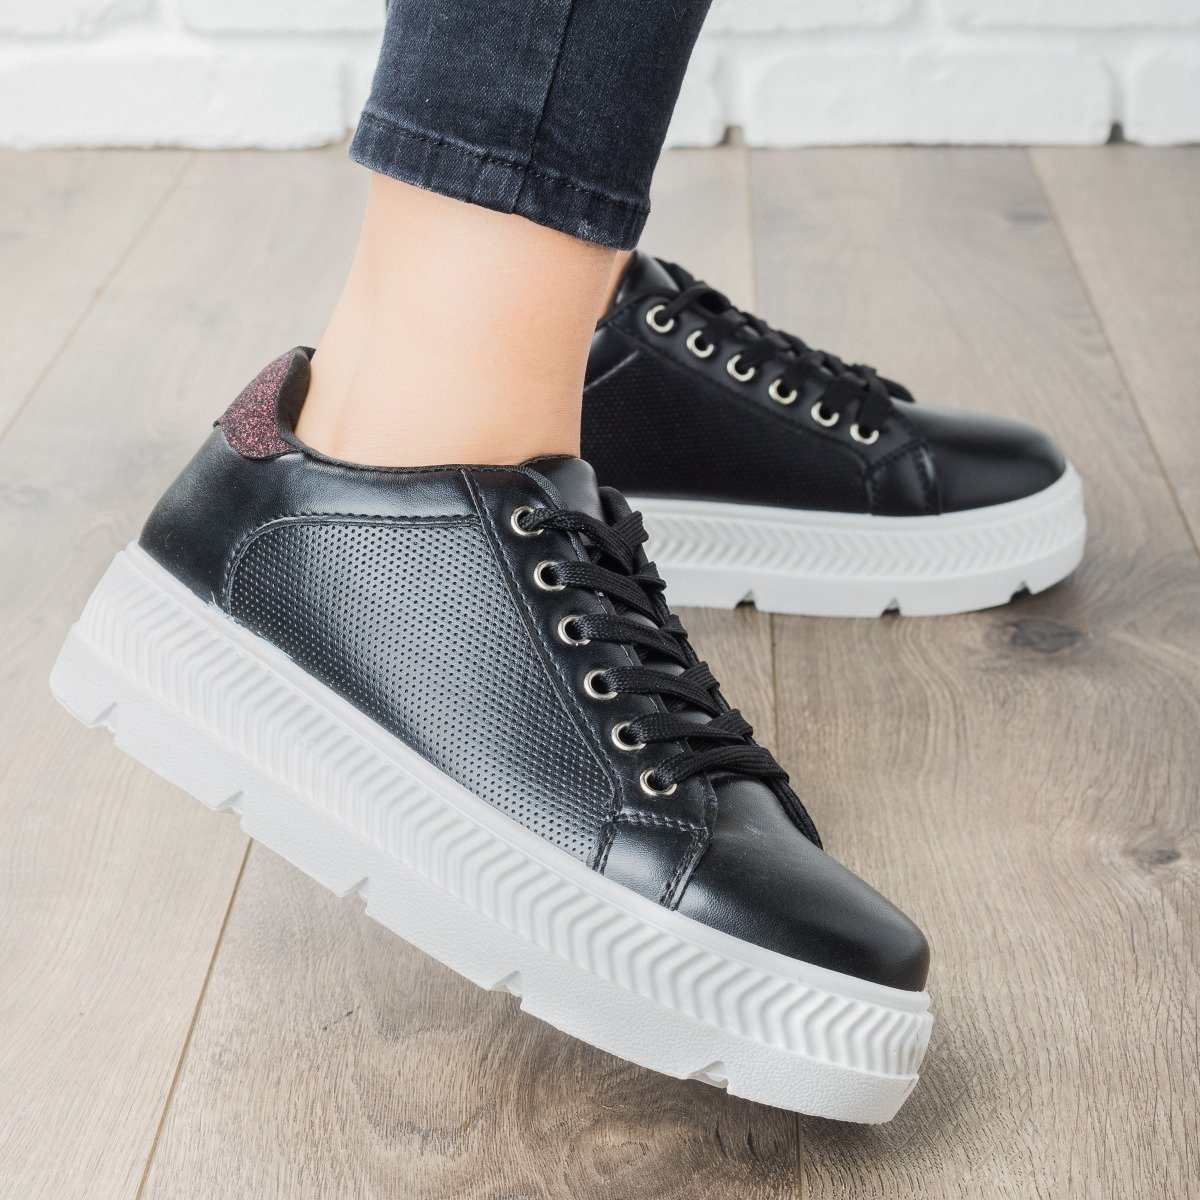 Platform Fashion Sneakers Weeboo Shoes